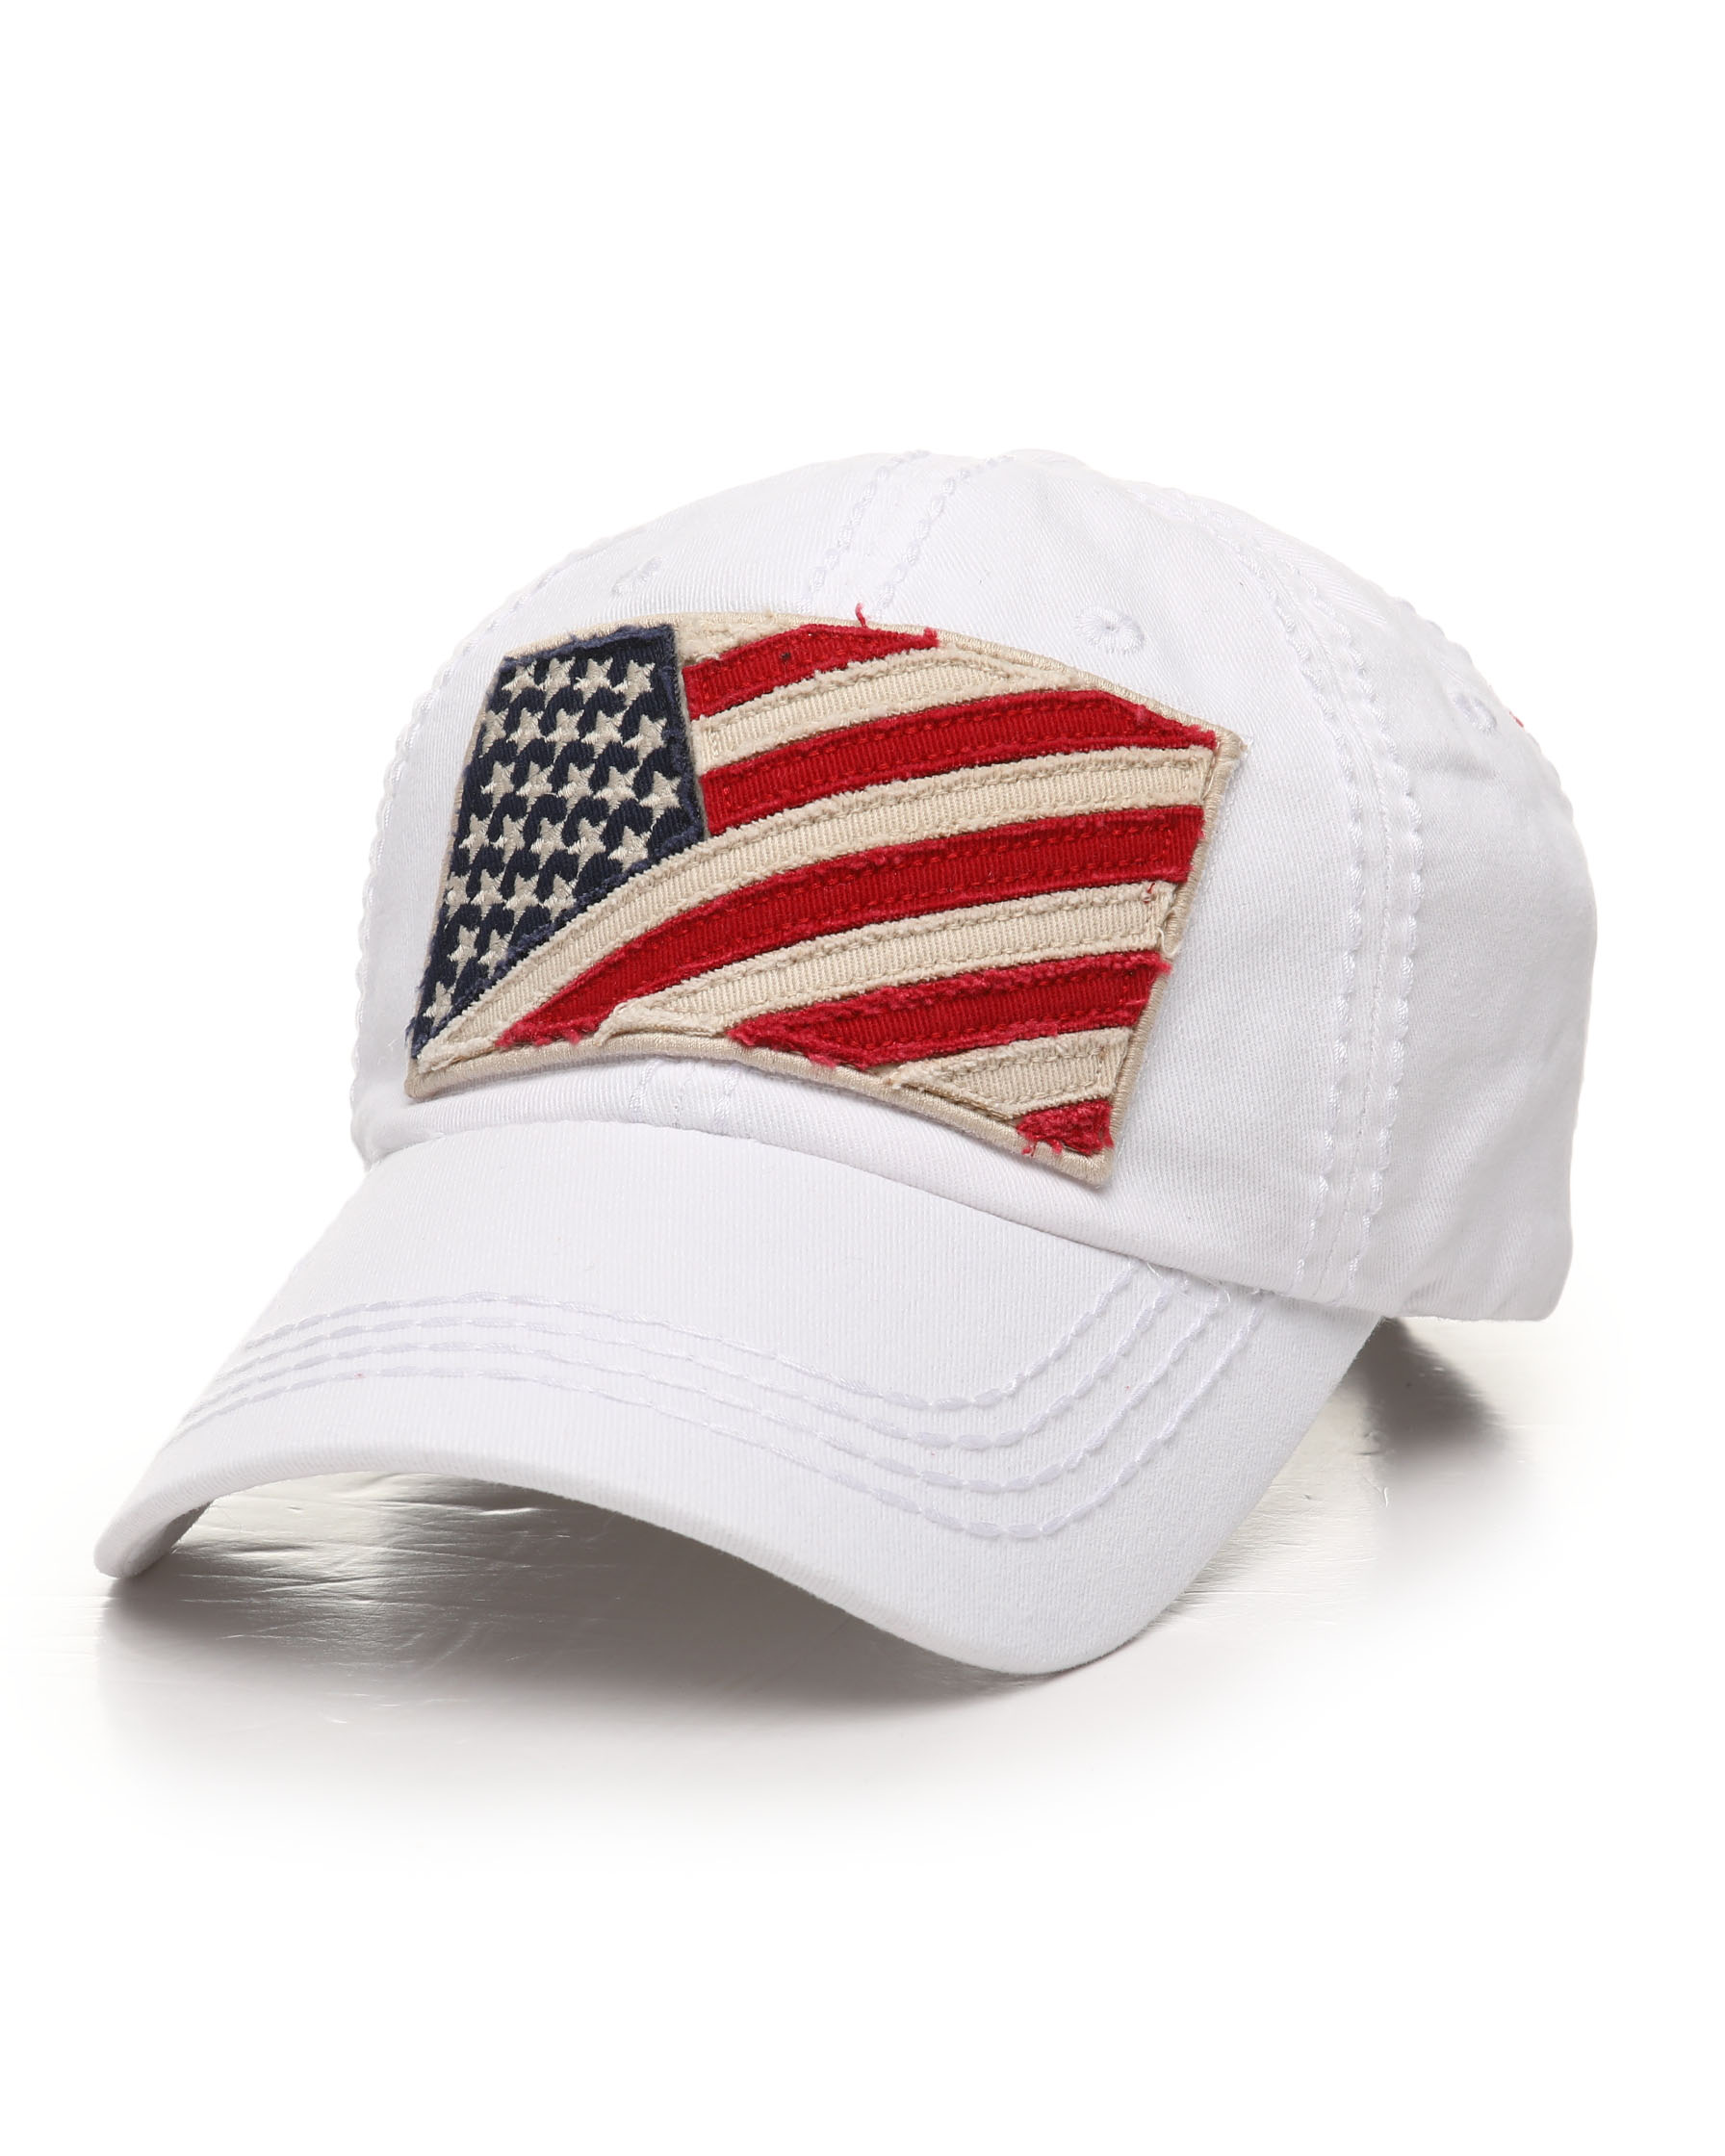 Buy USA Flag Dad Hat Men's Hats from Buyers Picks  Find